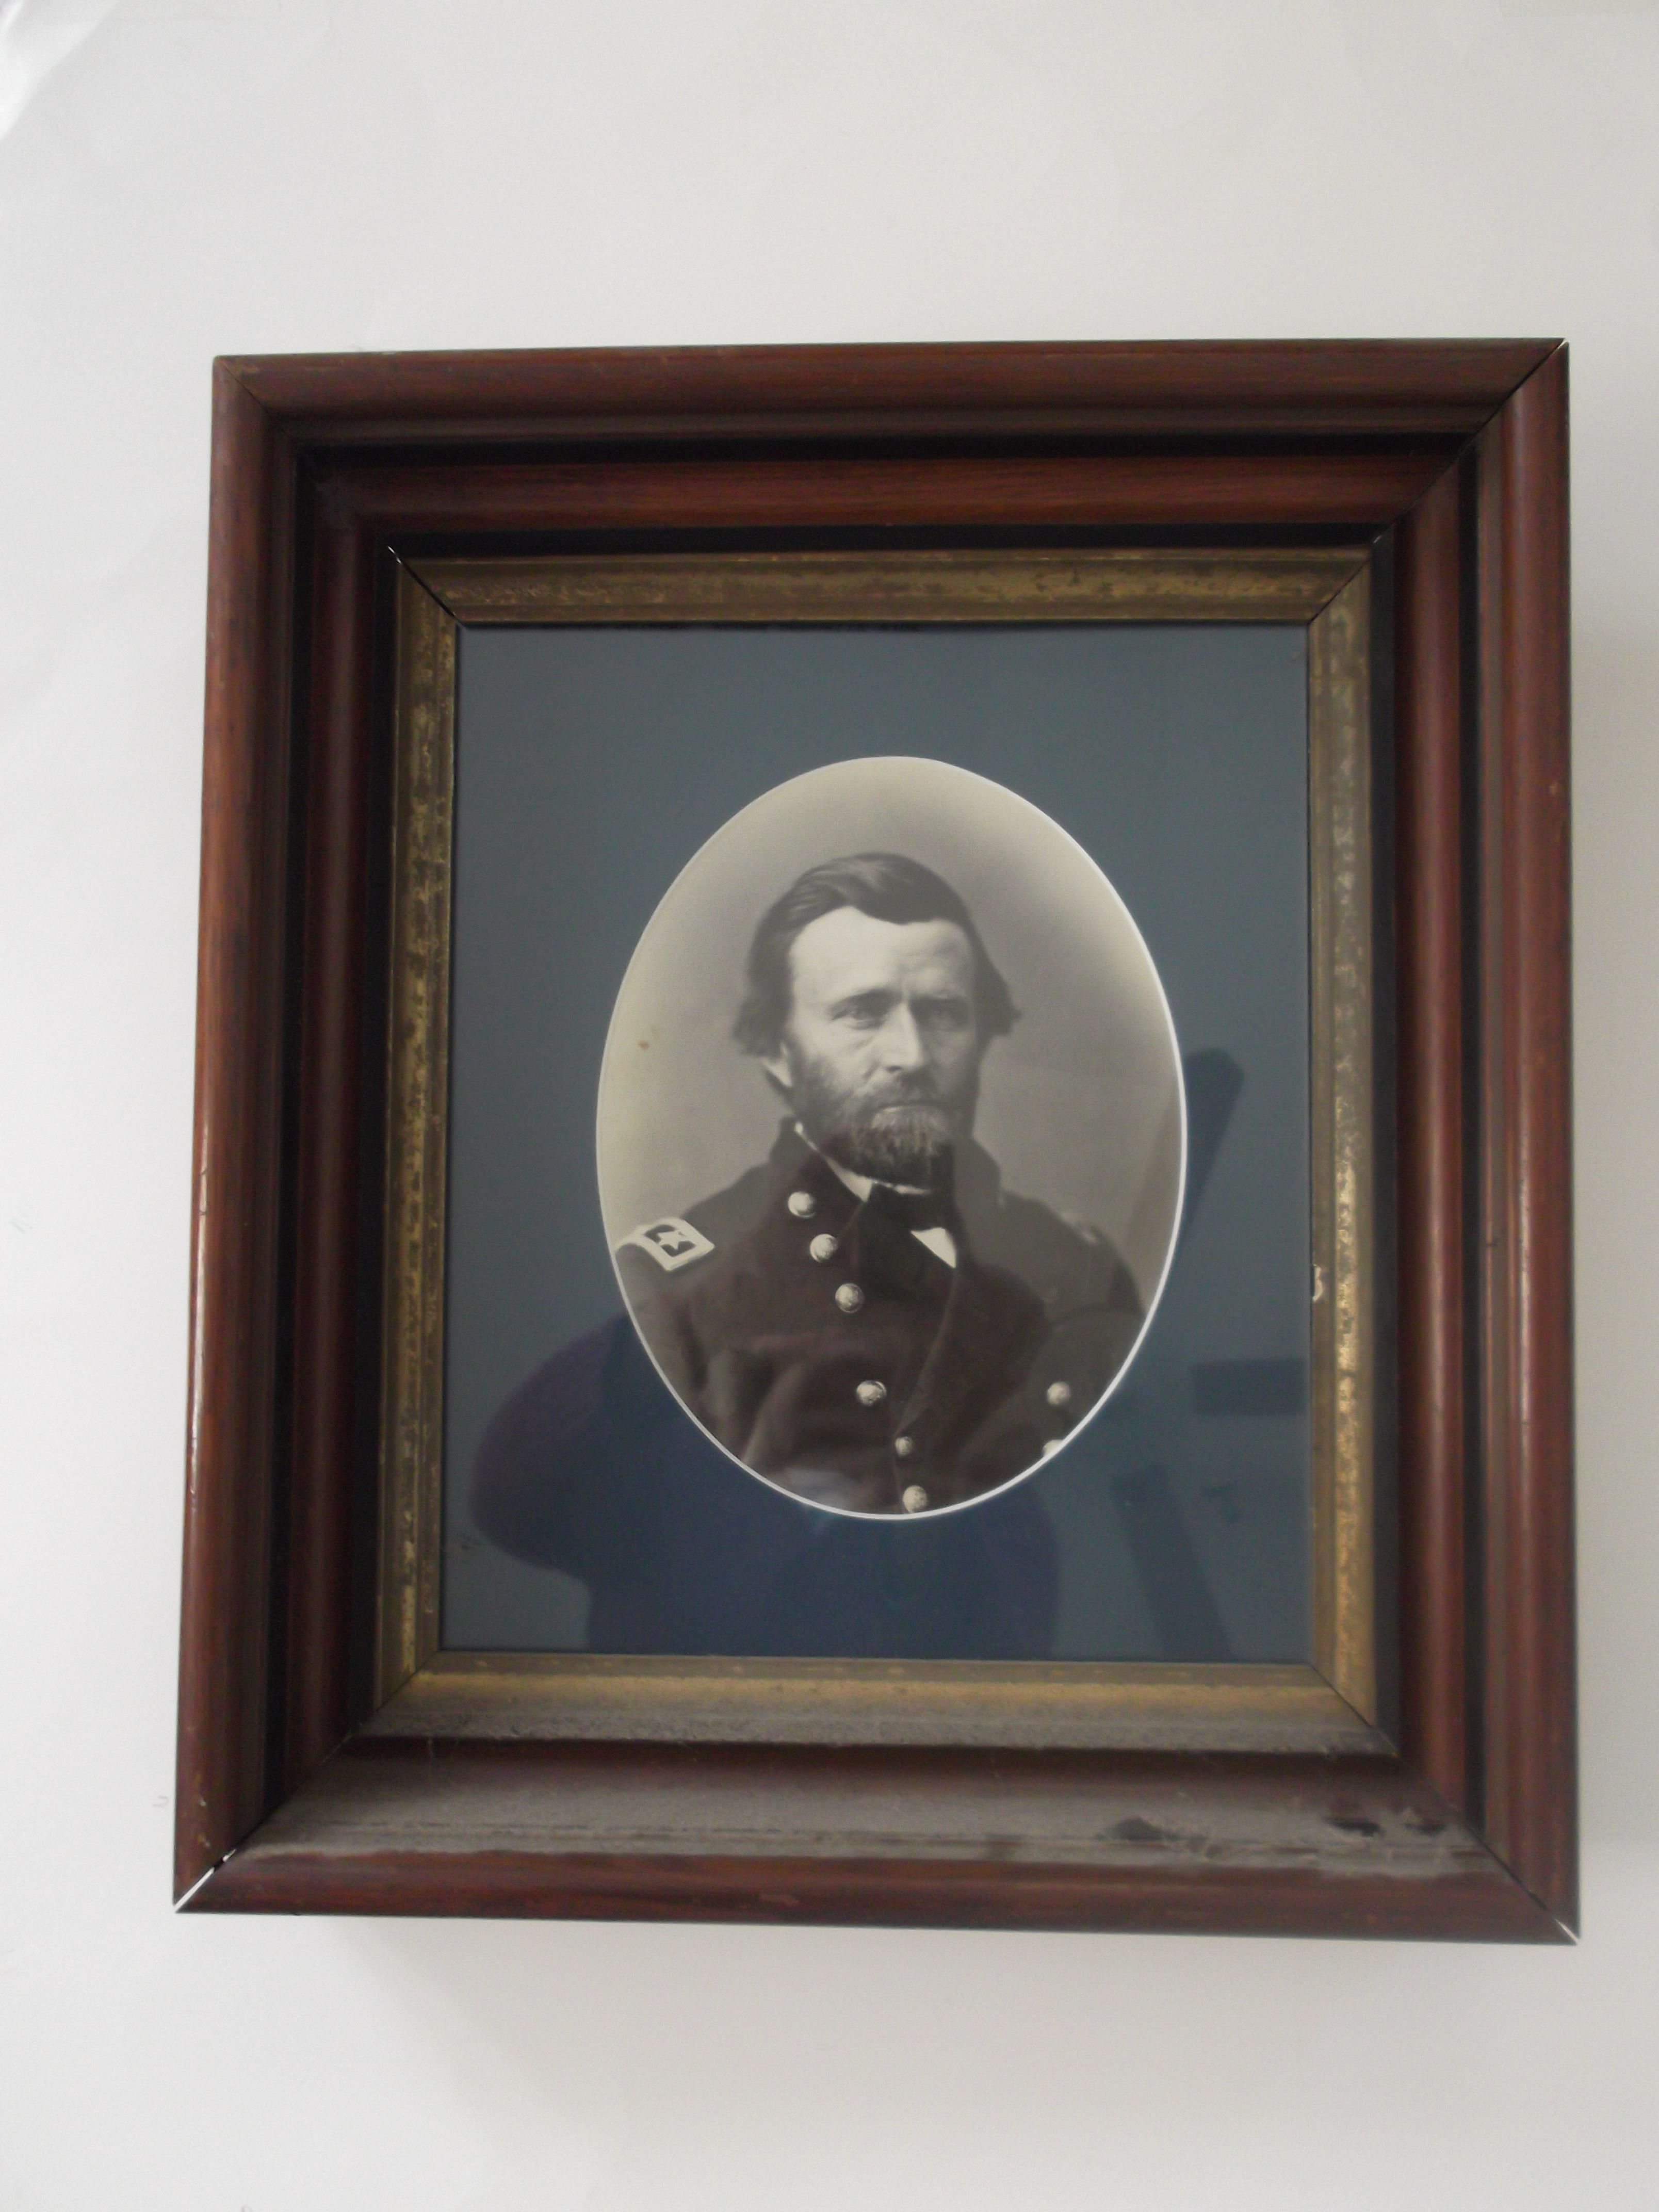 A print of Ulysses S. Grant  from my late husband's collection.